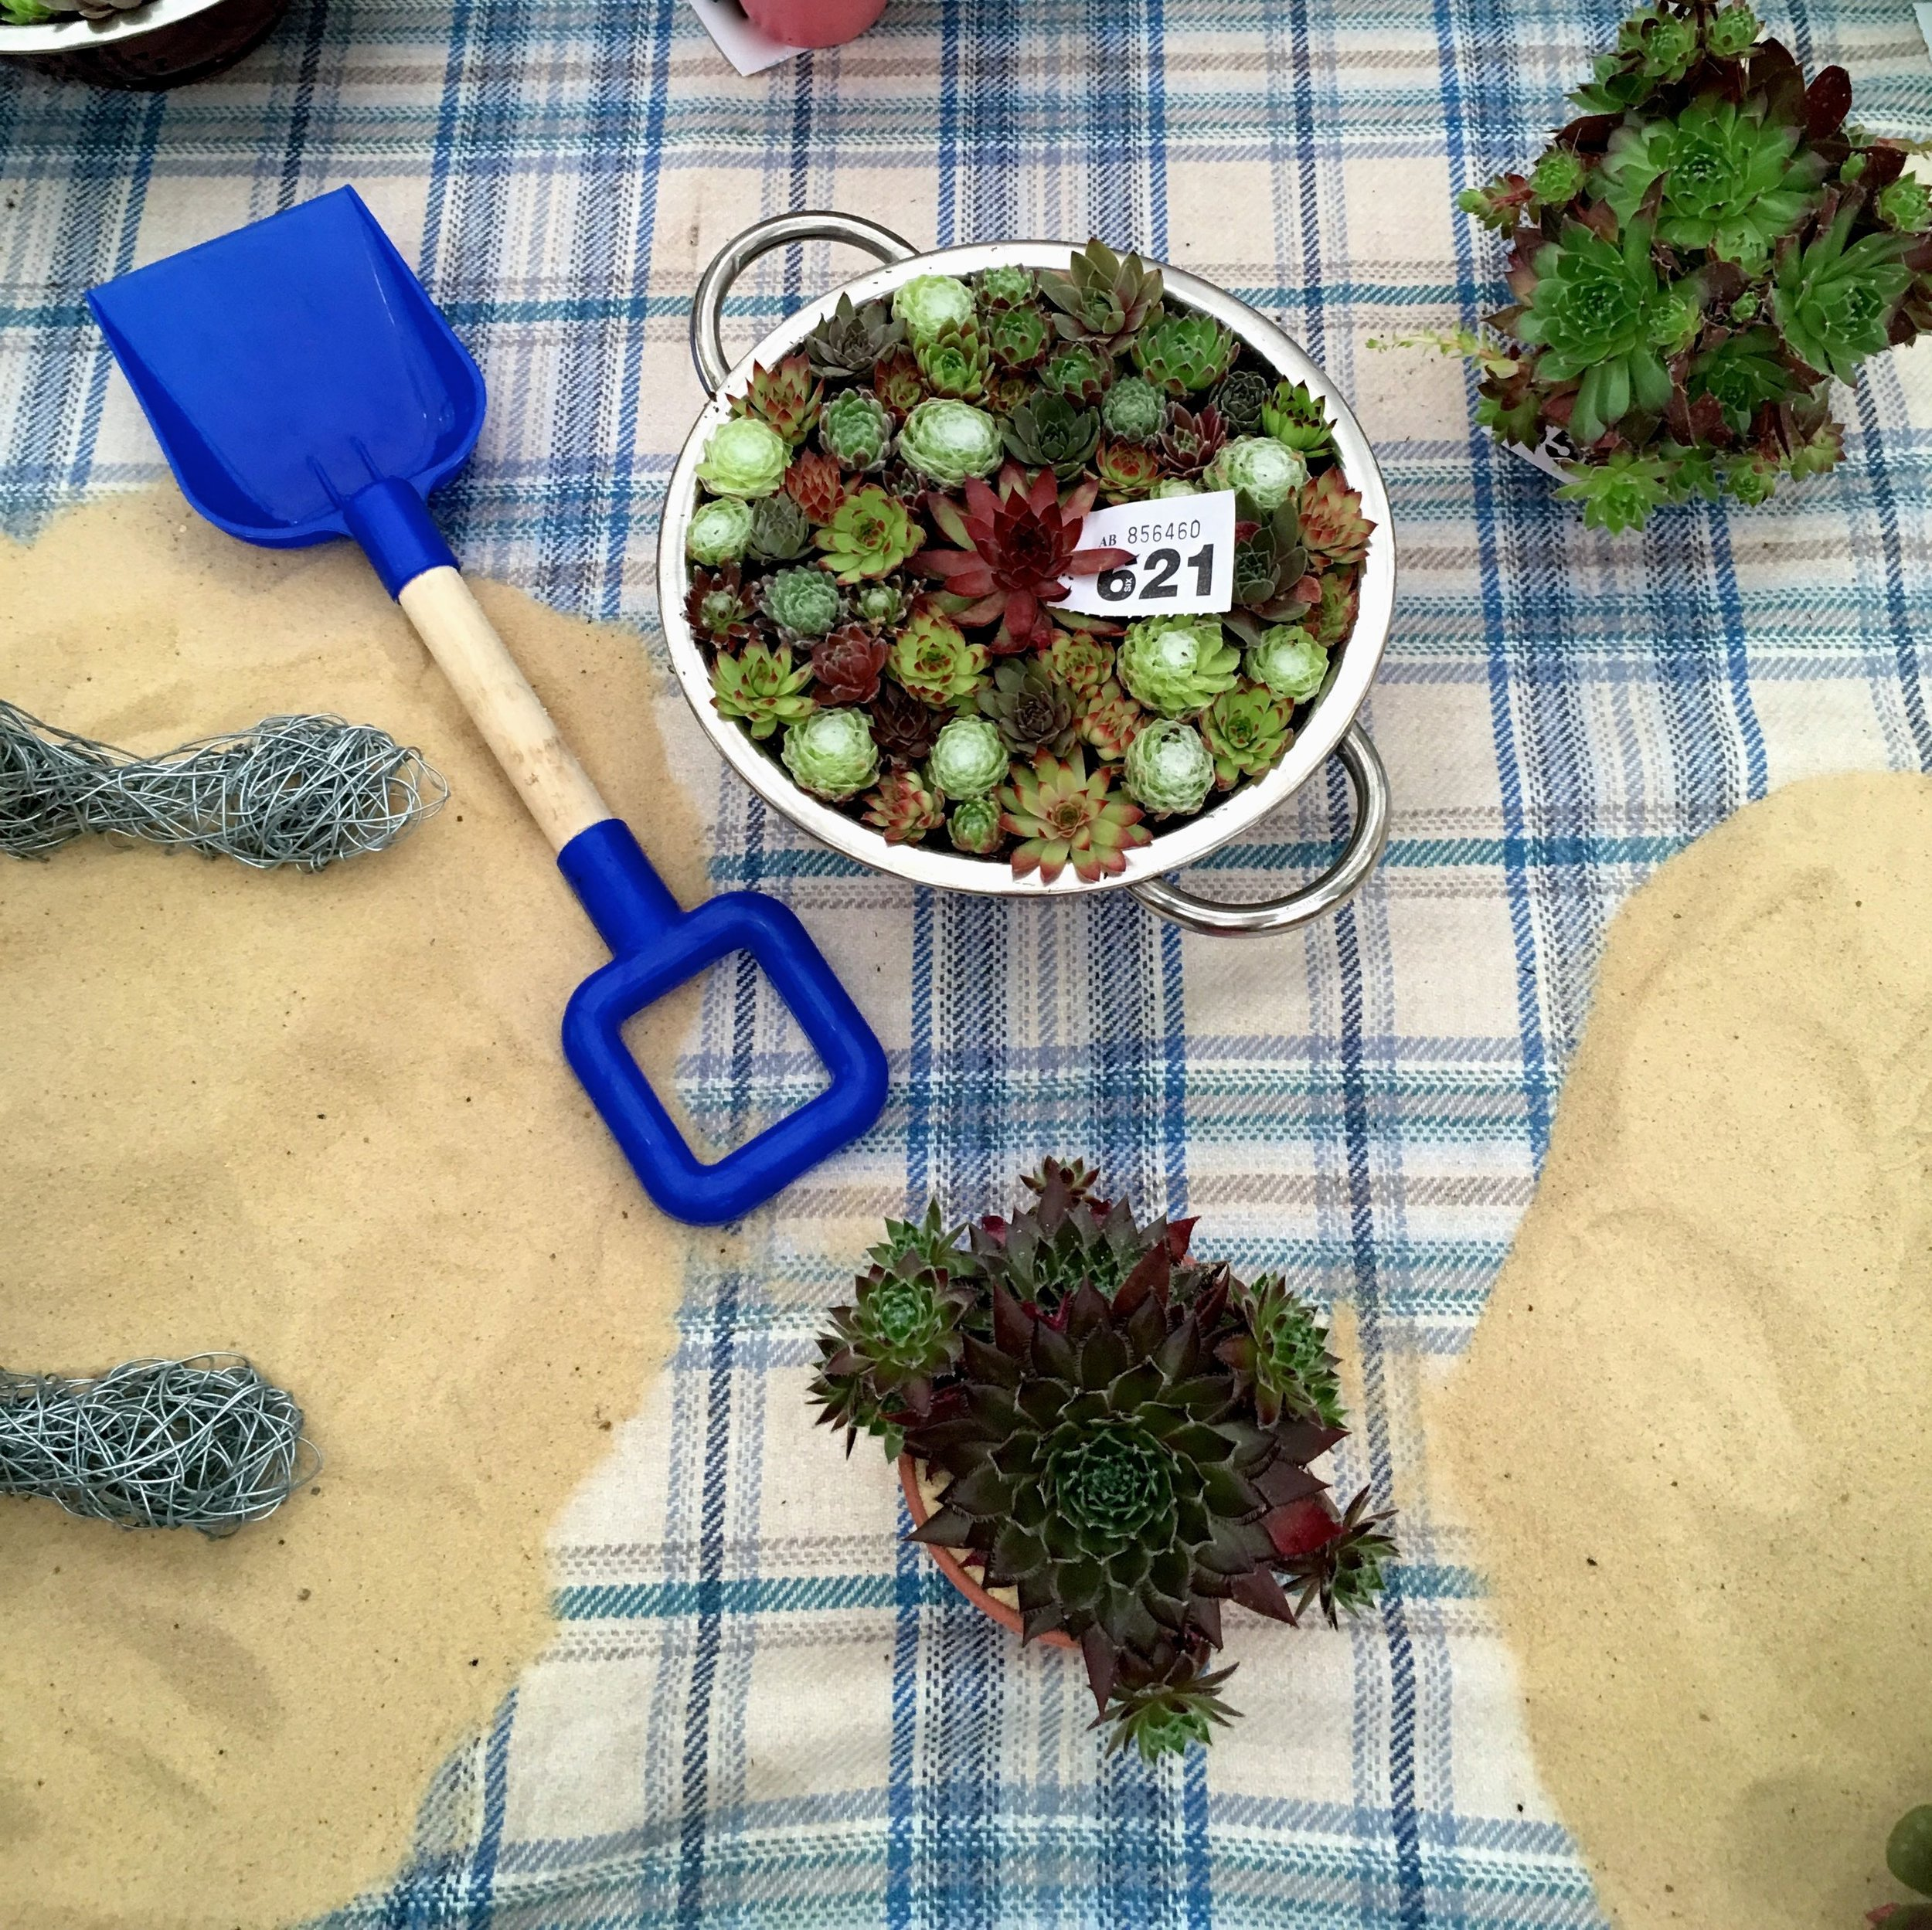 succulents and a spade on the beach at Gardeners' World Live